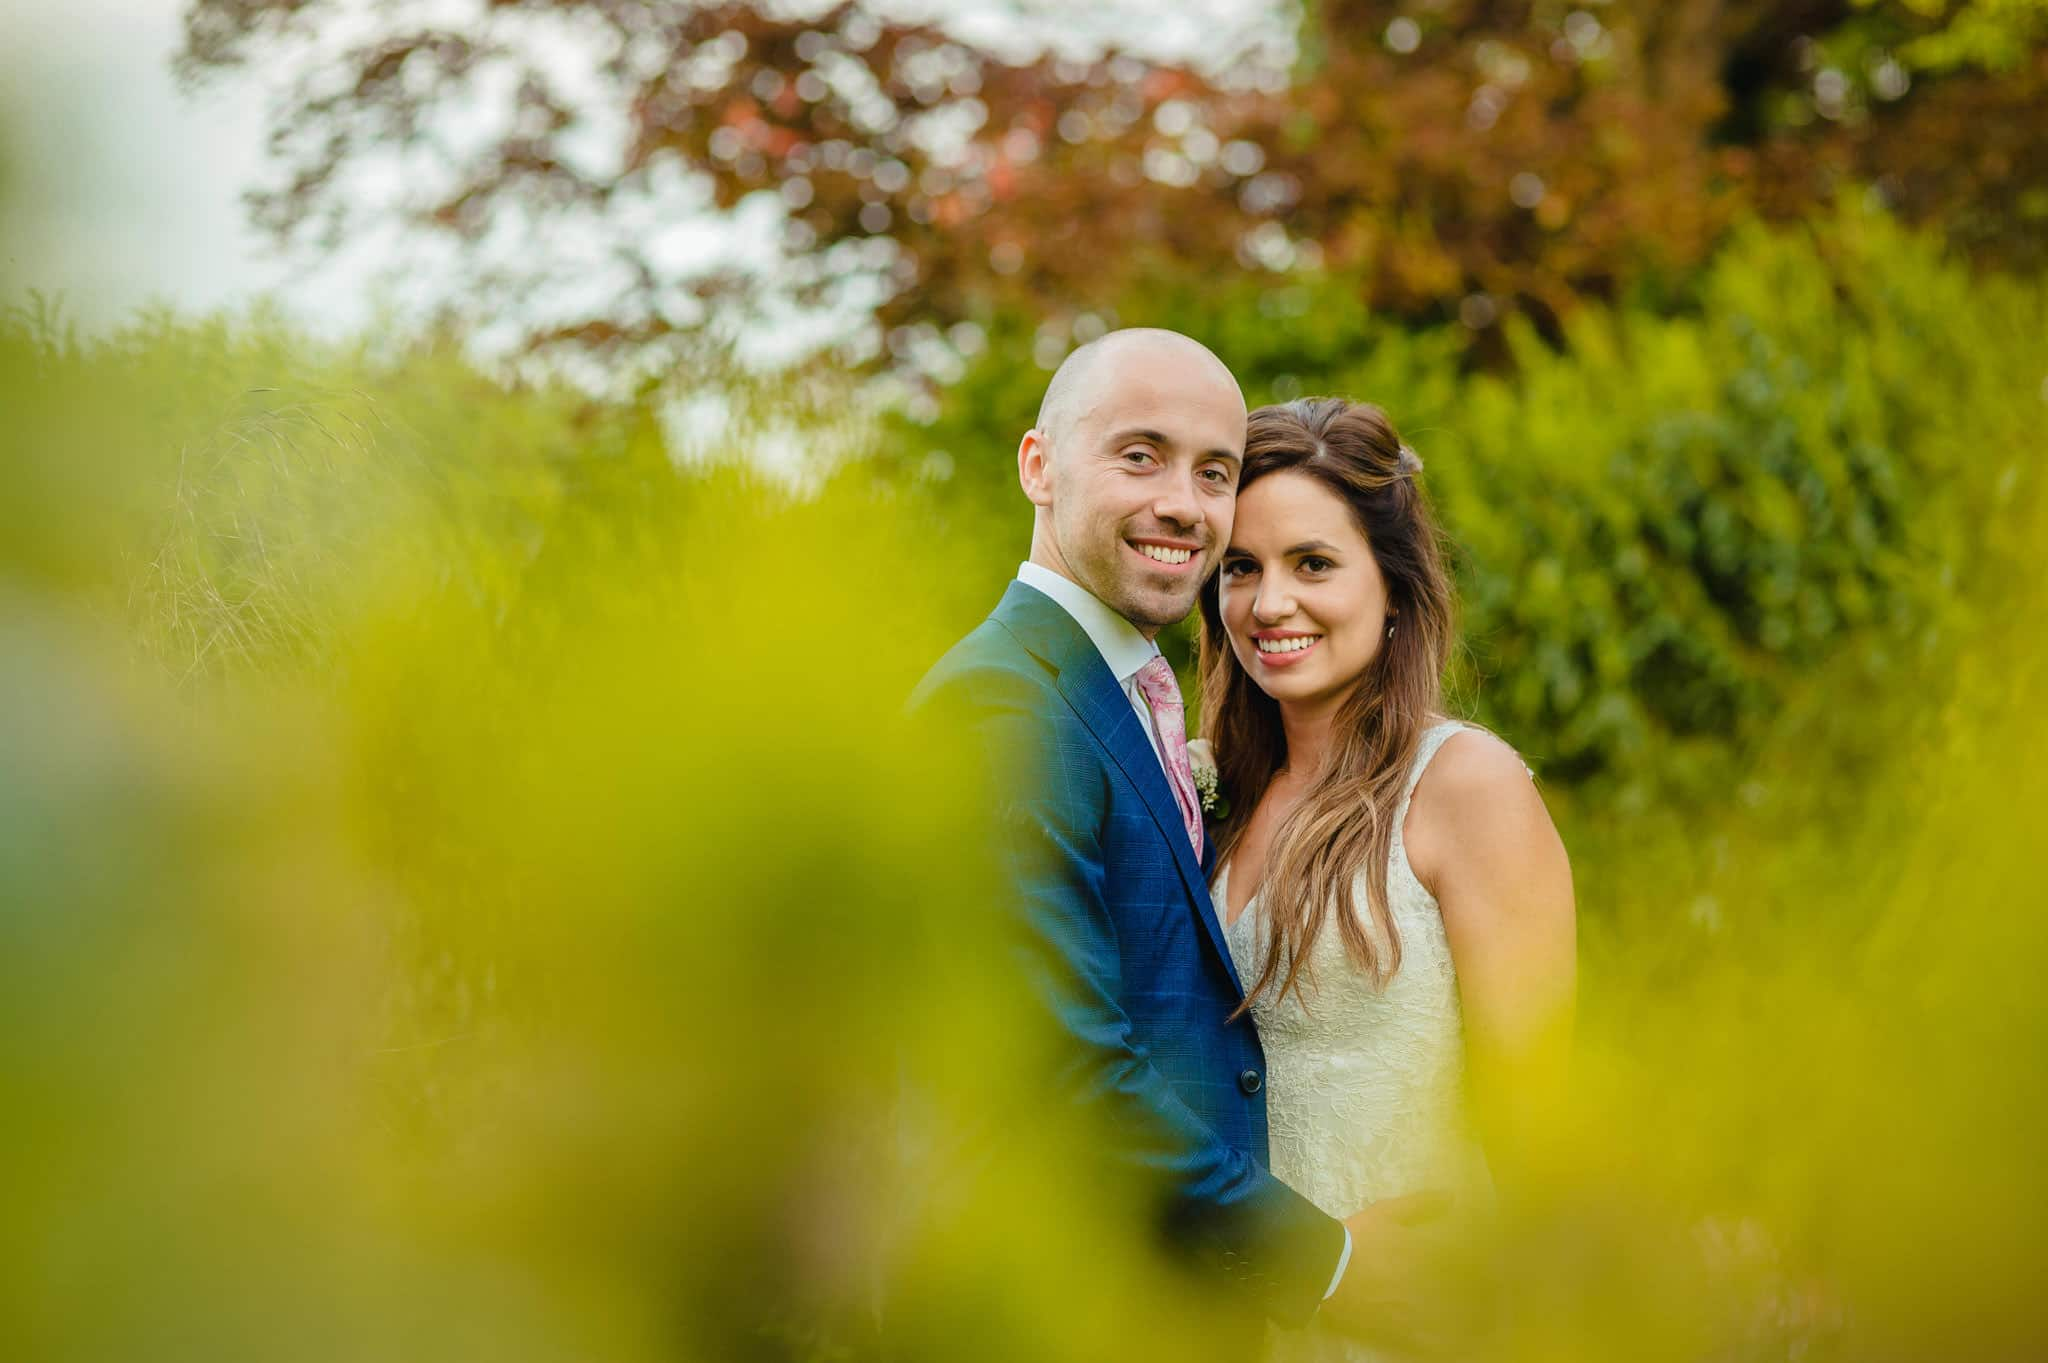 Wedding at Redhouse Barn in Stoke Prior, Worcestershire 172